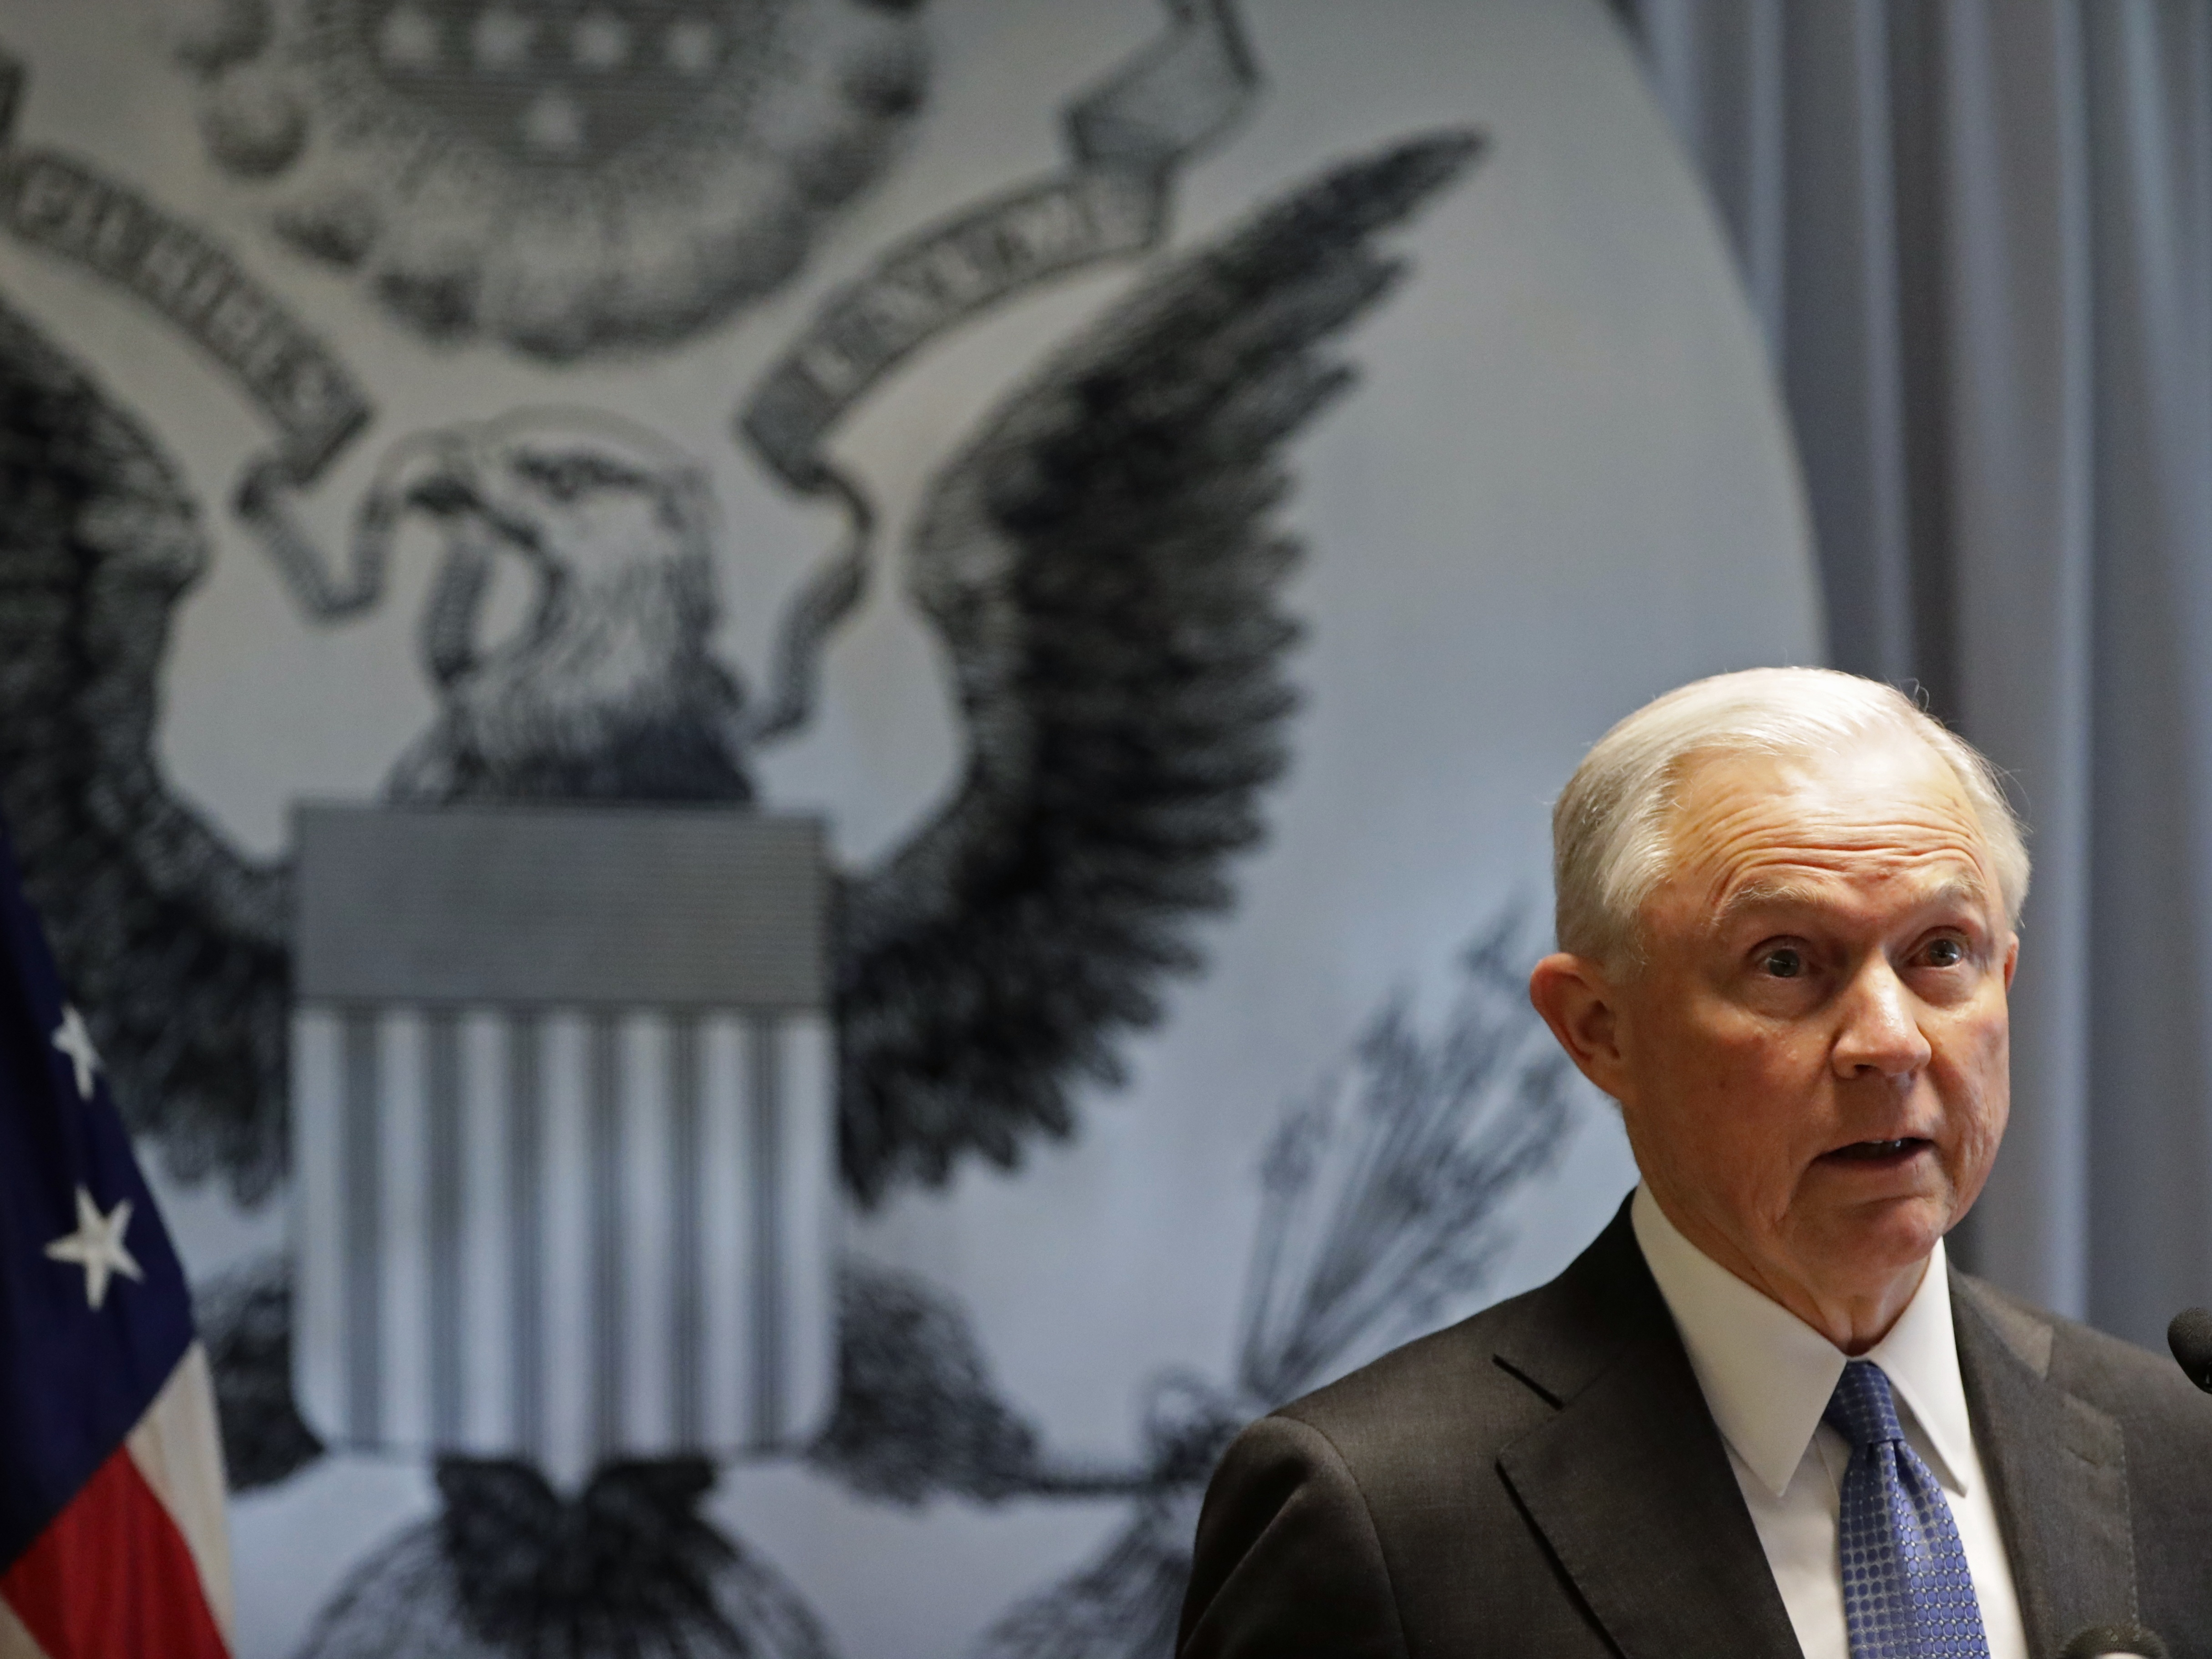 US prosecutors told to push for more, harsher punishments